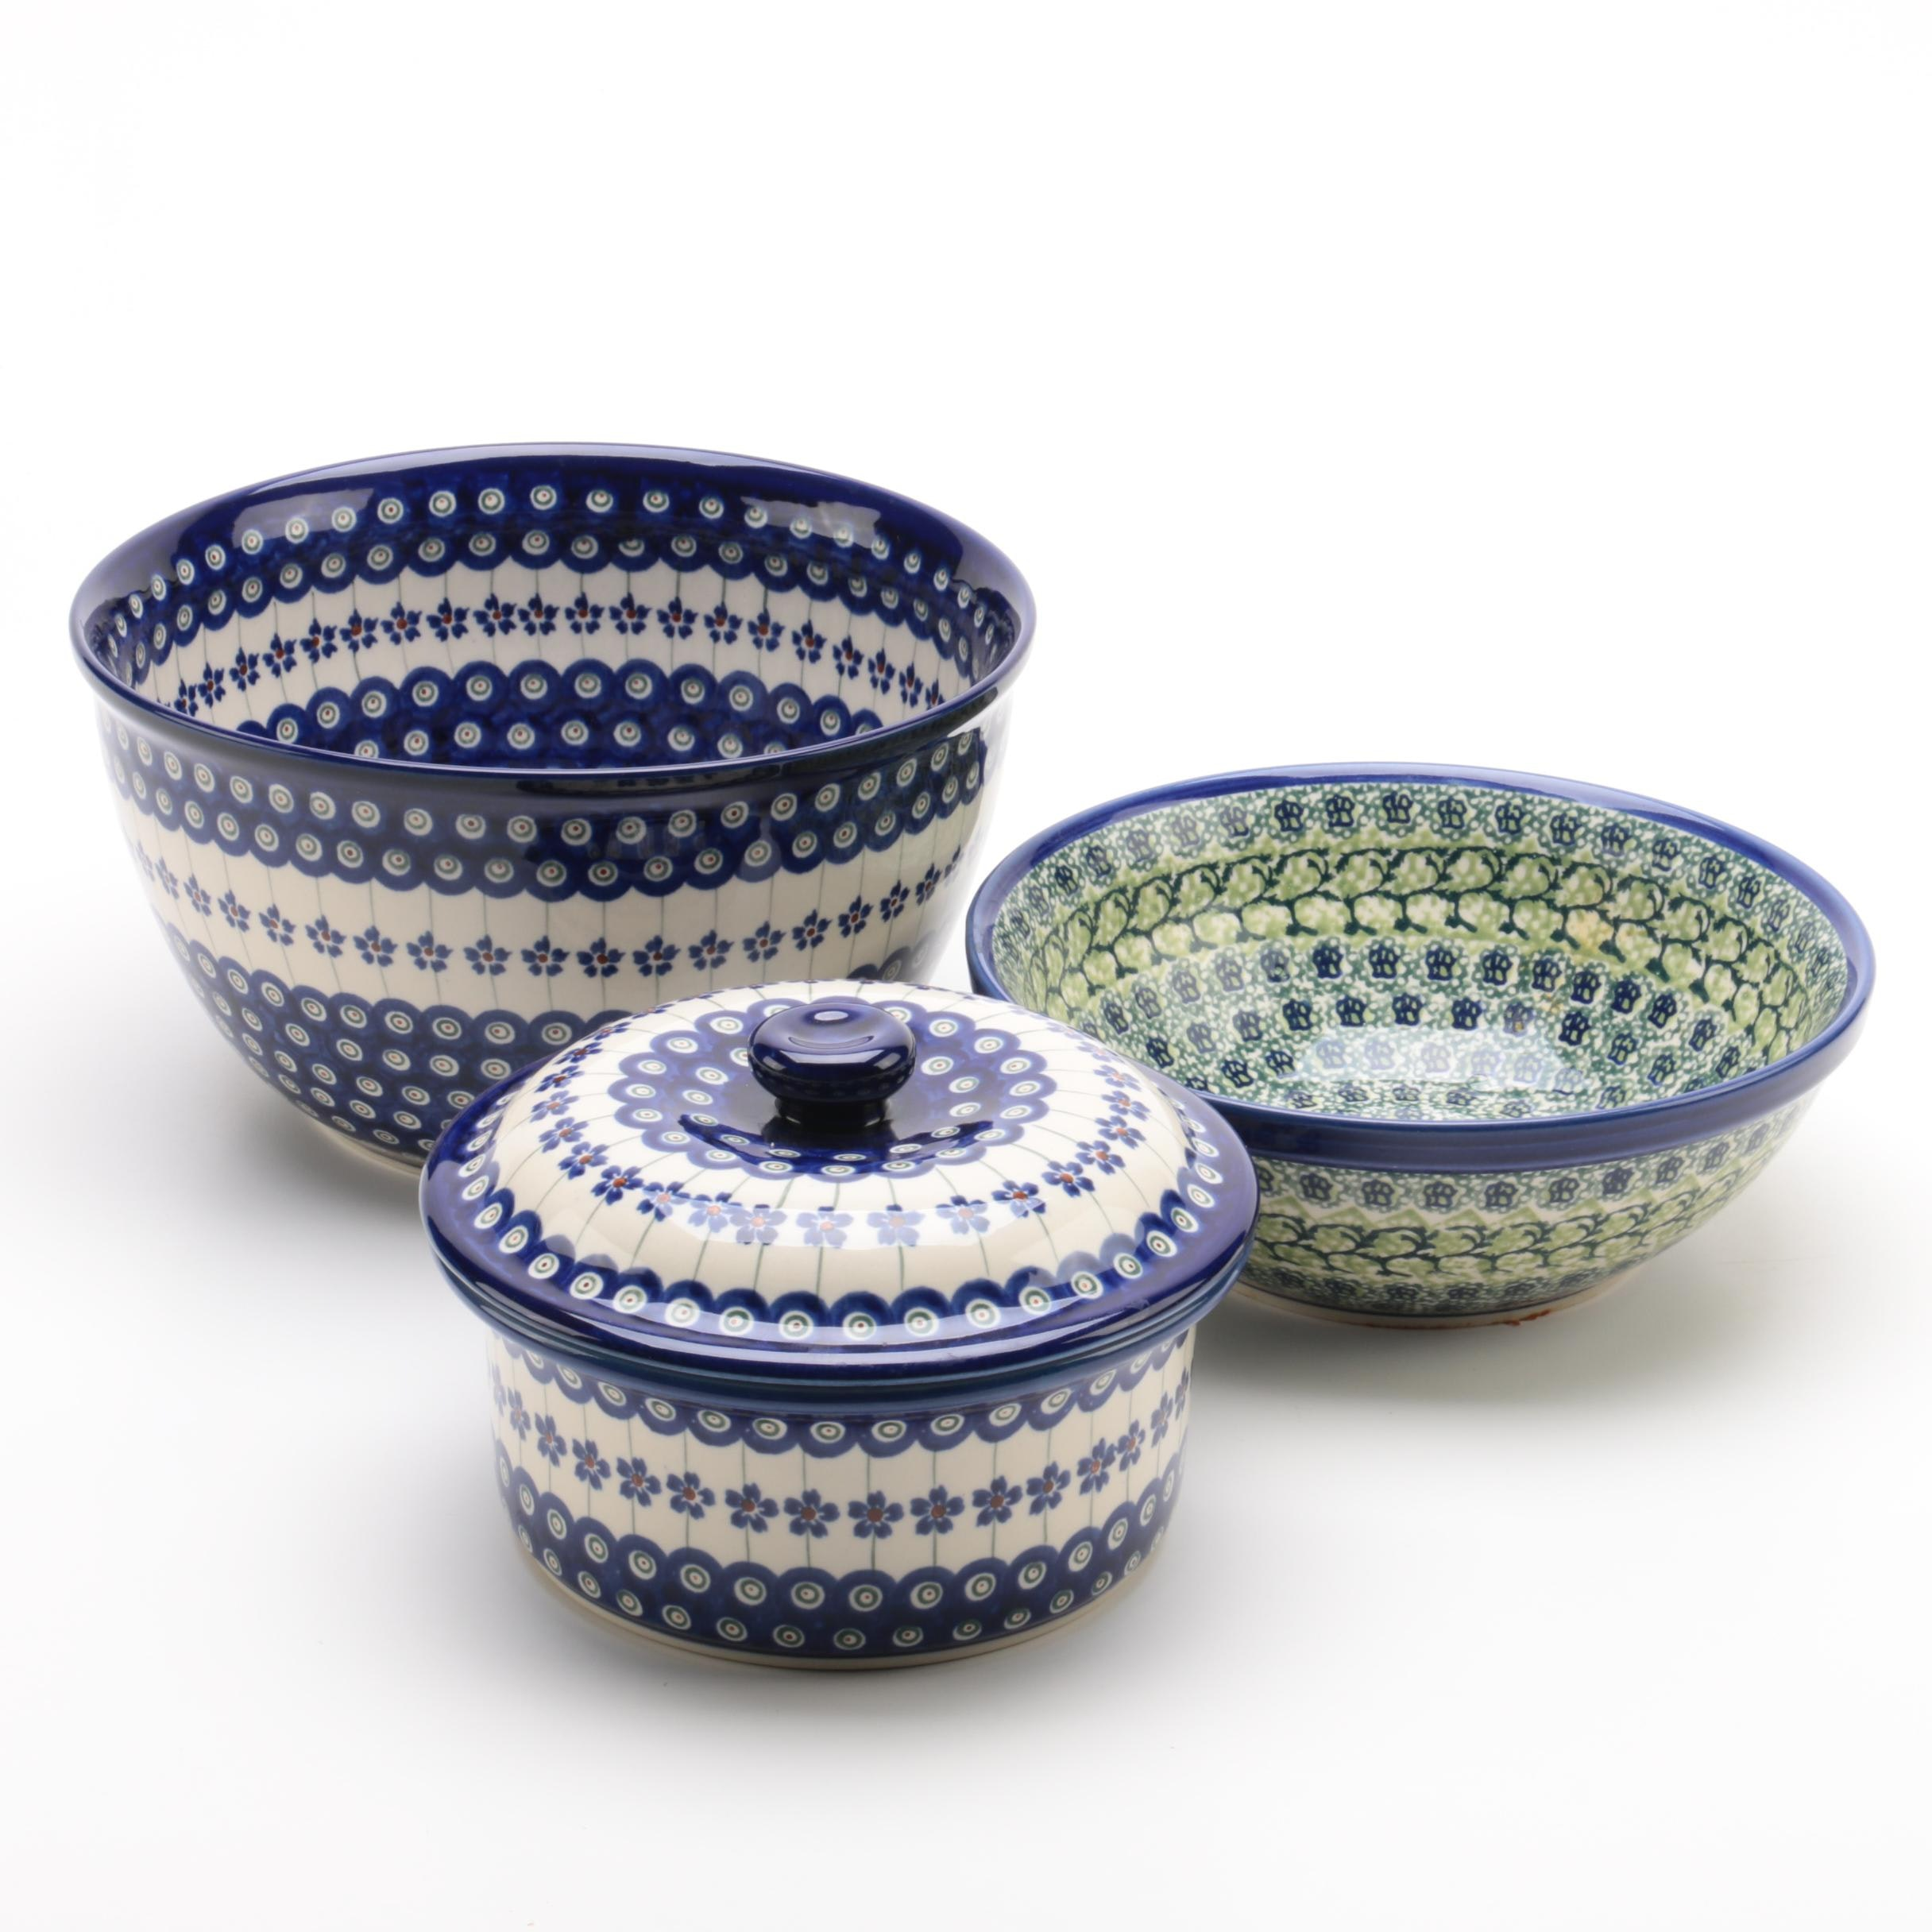 Hand-Painted Unikat Polish Ceramic Bowls and Casserole